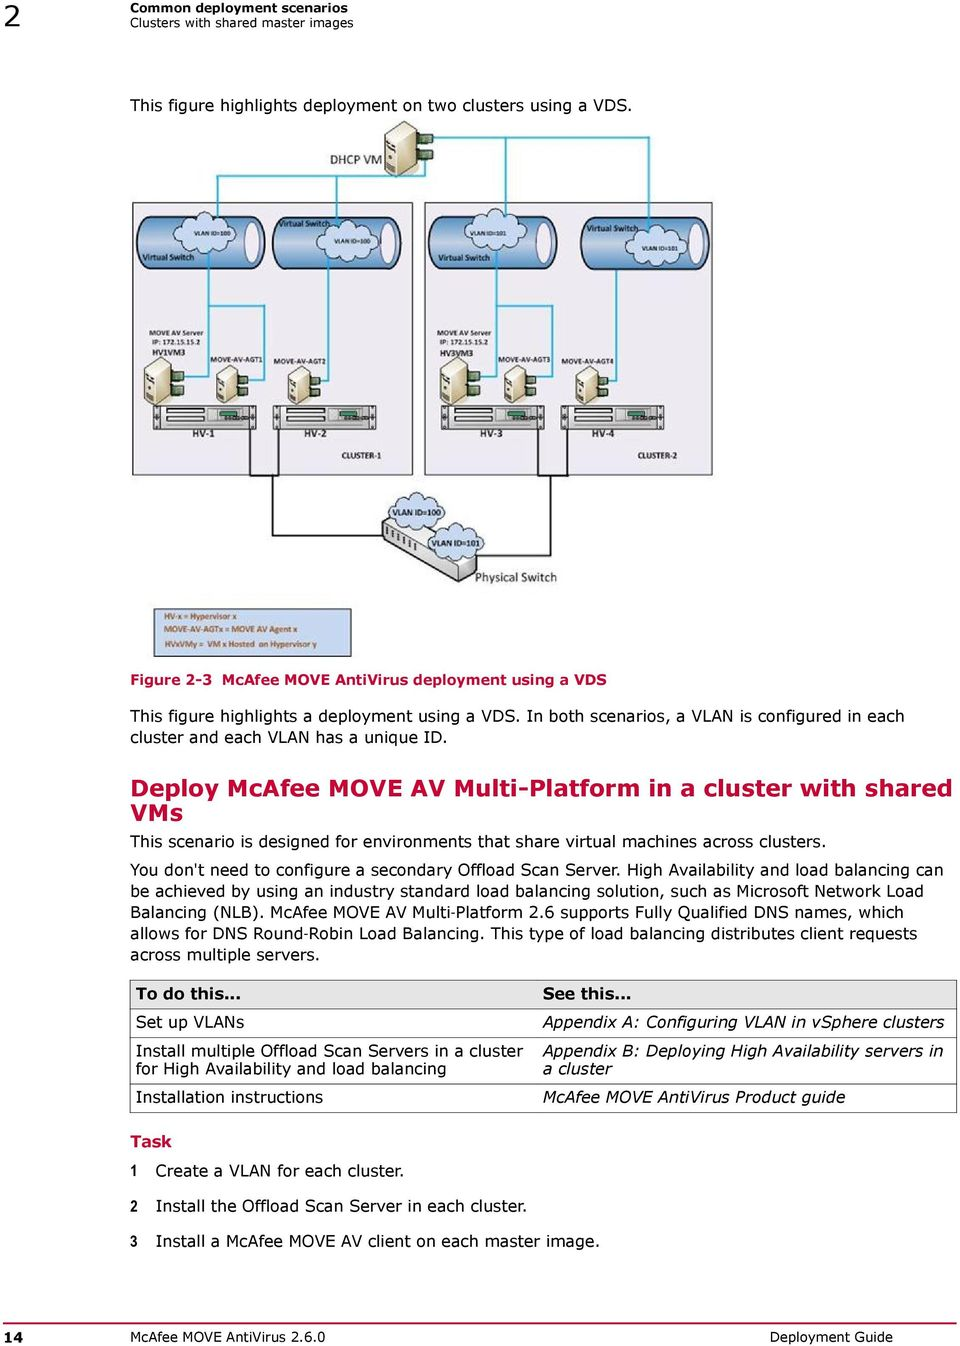 Deploy McAfee MOVE AV Multi-Platform in a cluster with shared VMs This scenario is designed for environments that share virtual machines across clusters.